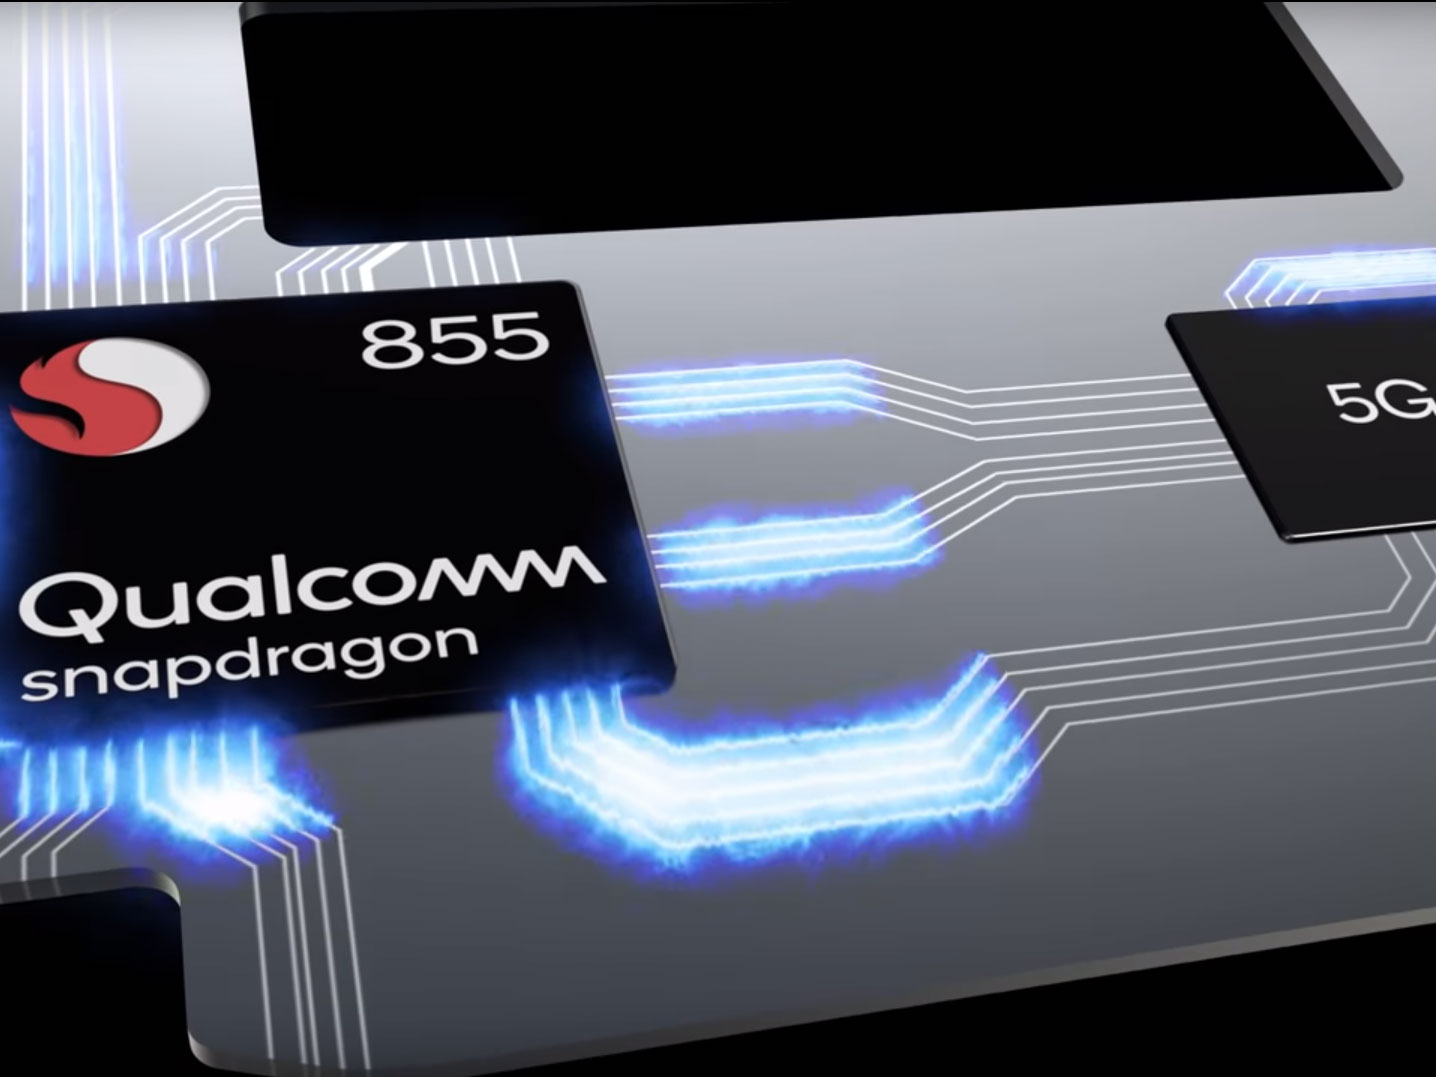 Qualcomm's new Snapdragon 855 chipset offers faster depth